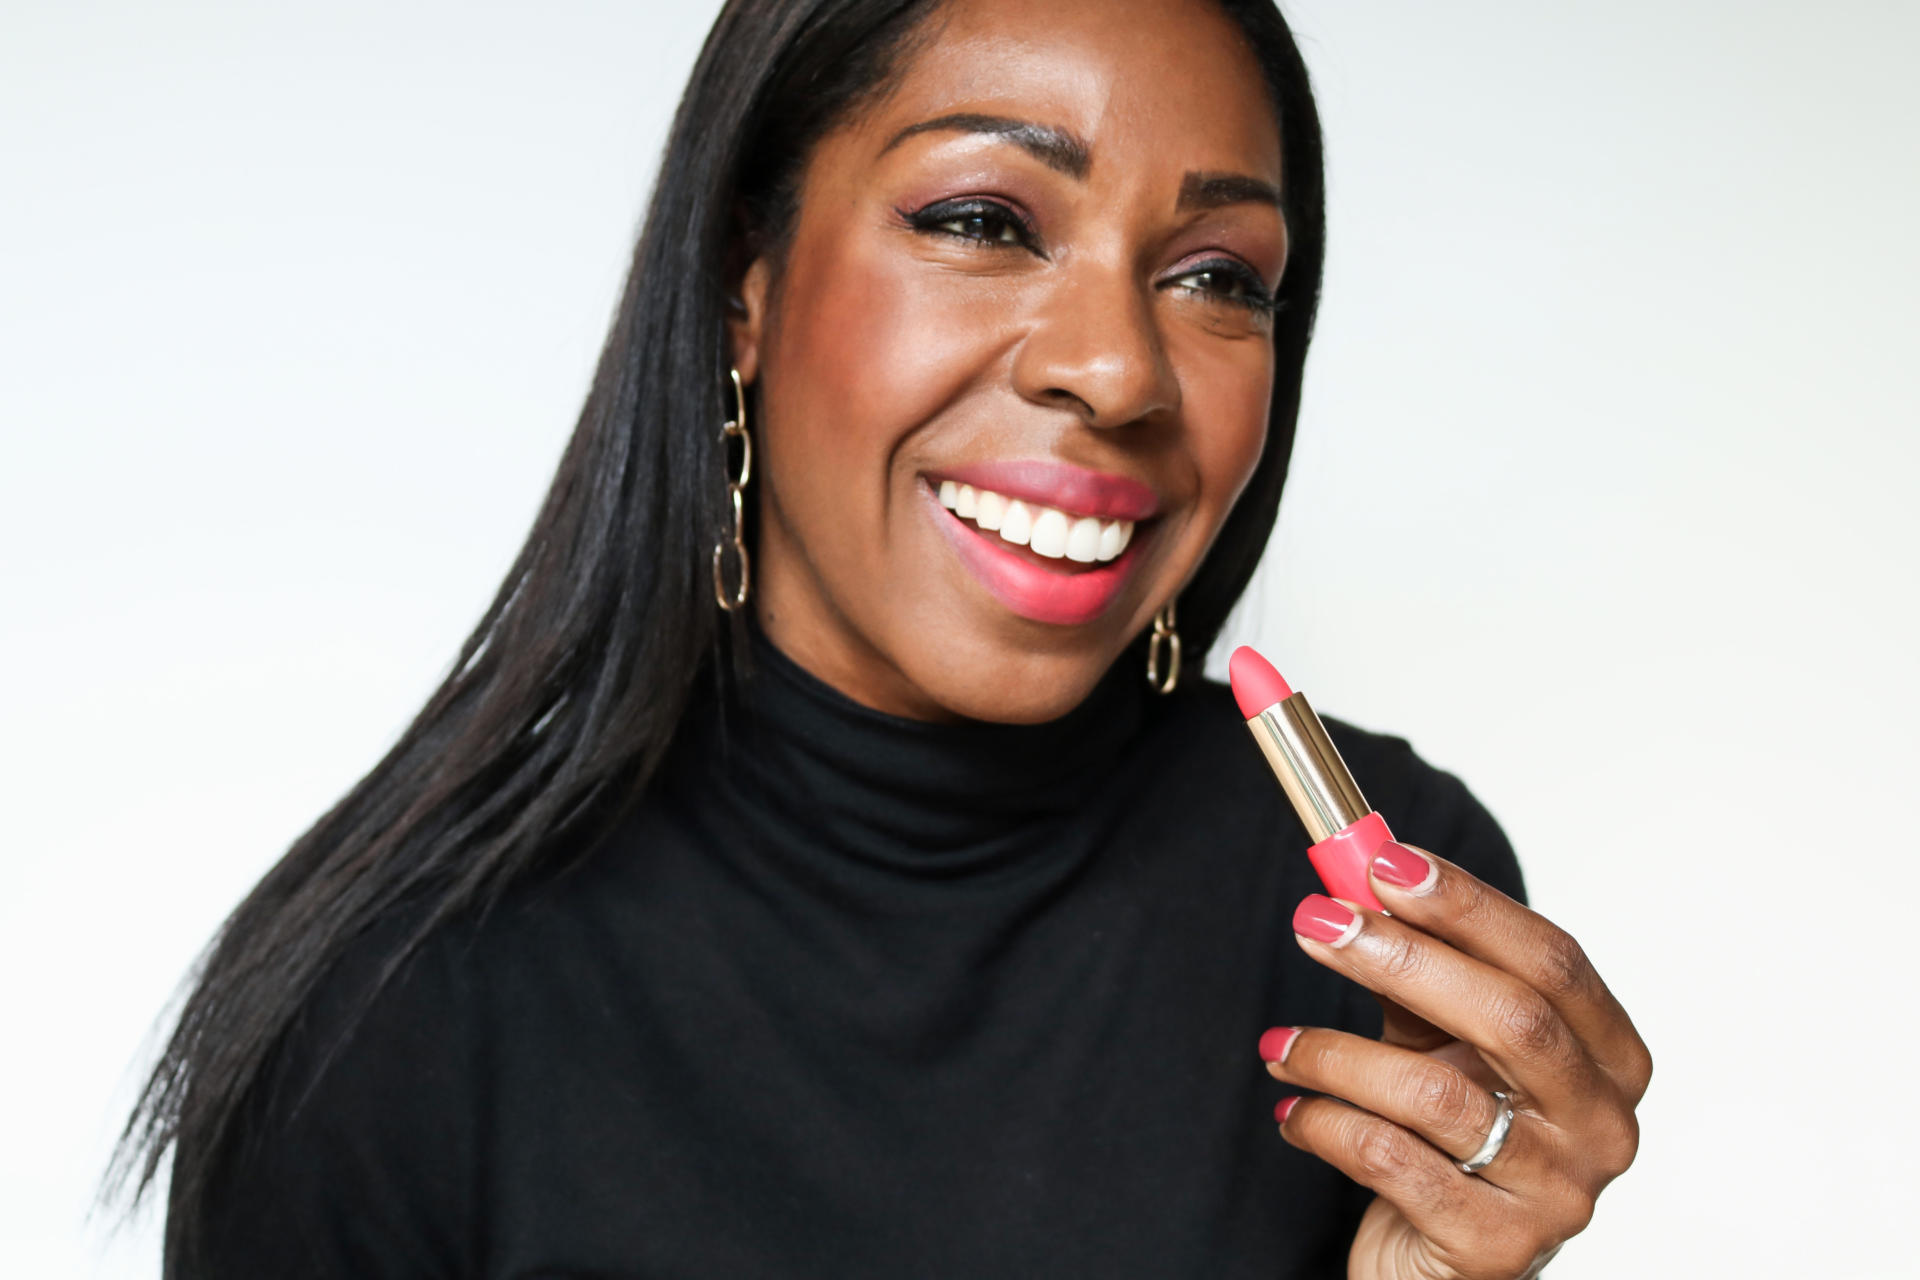 The Most Hydrating Matte Lipsticks: Lancôme L'Absolu Rouge Drama Matte   Style Domination by Dominique Baker